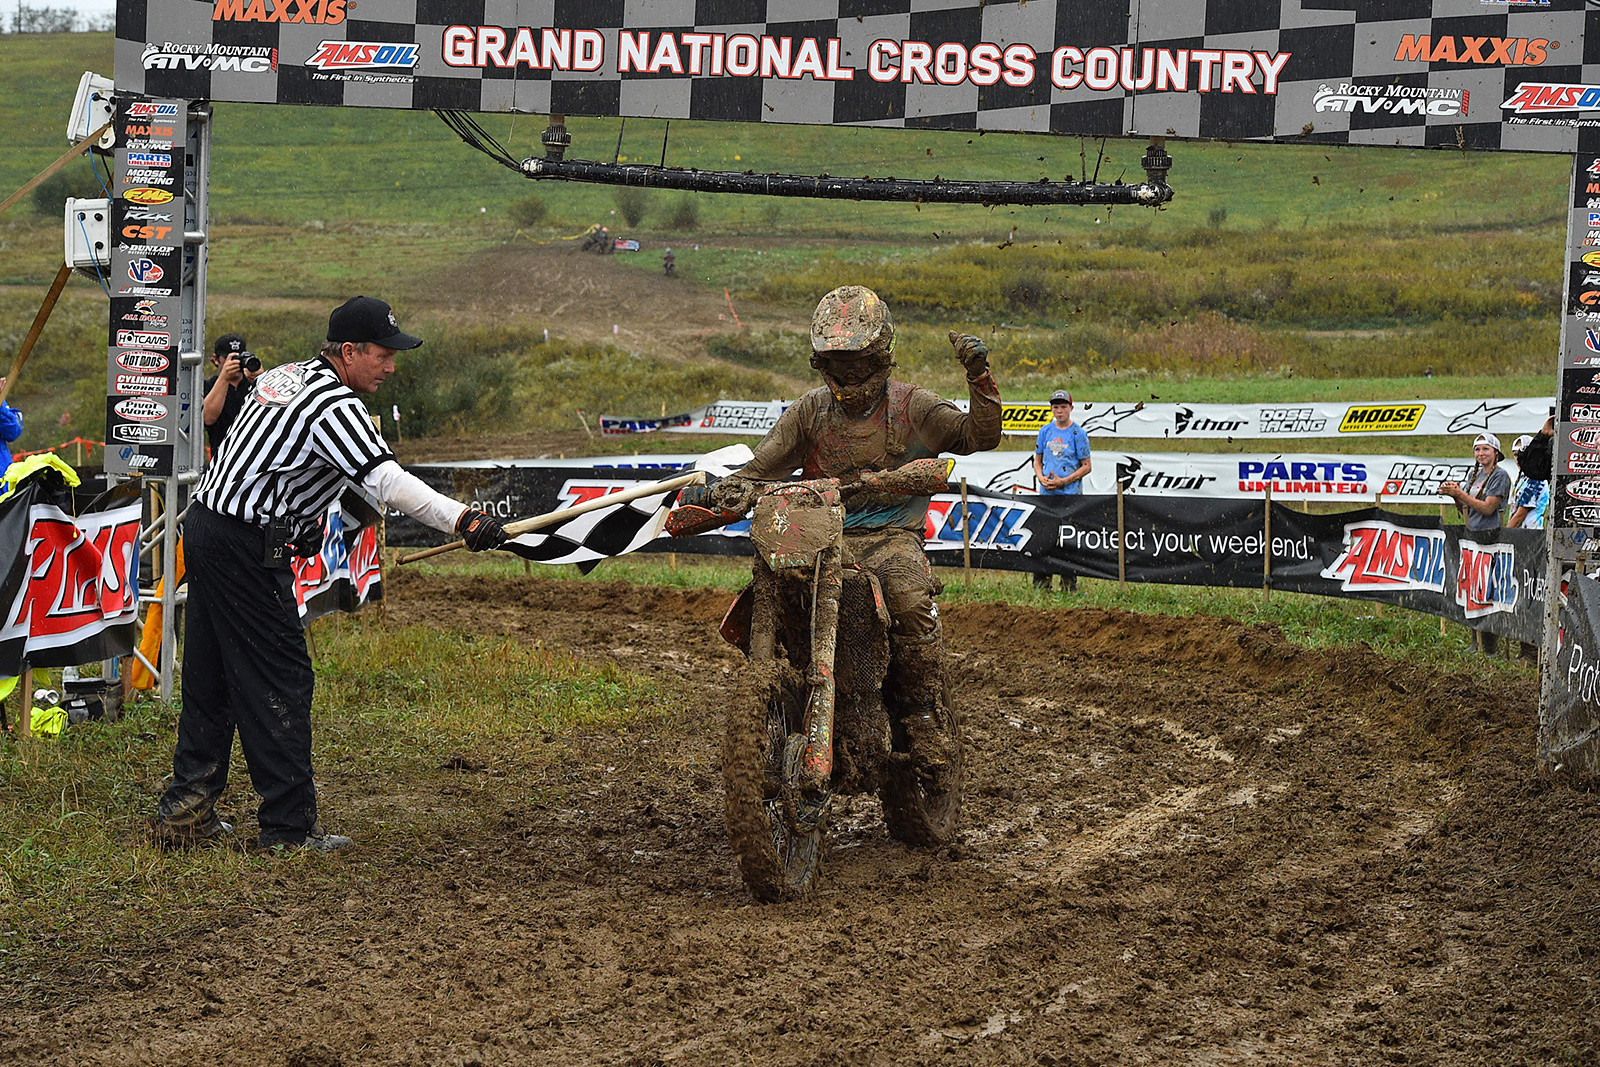 Make that five XC1 Pro championships for Kailub Russell, as he took the checkered flag here at the Powerline GNCC.